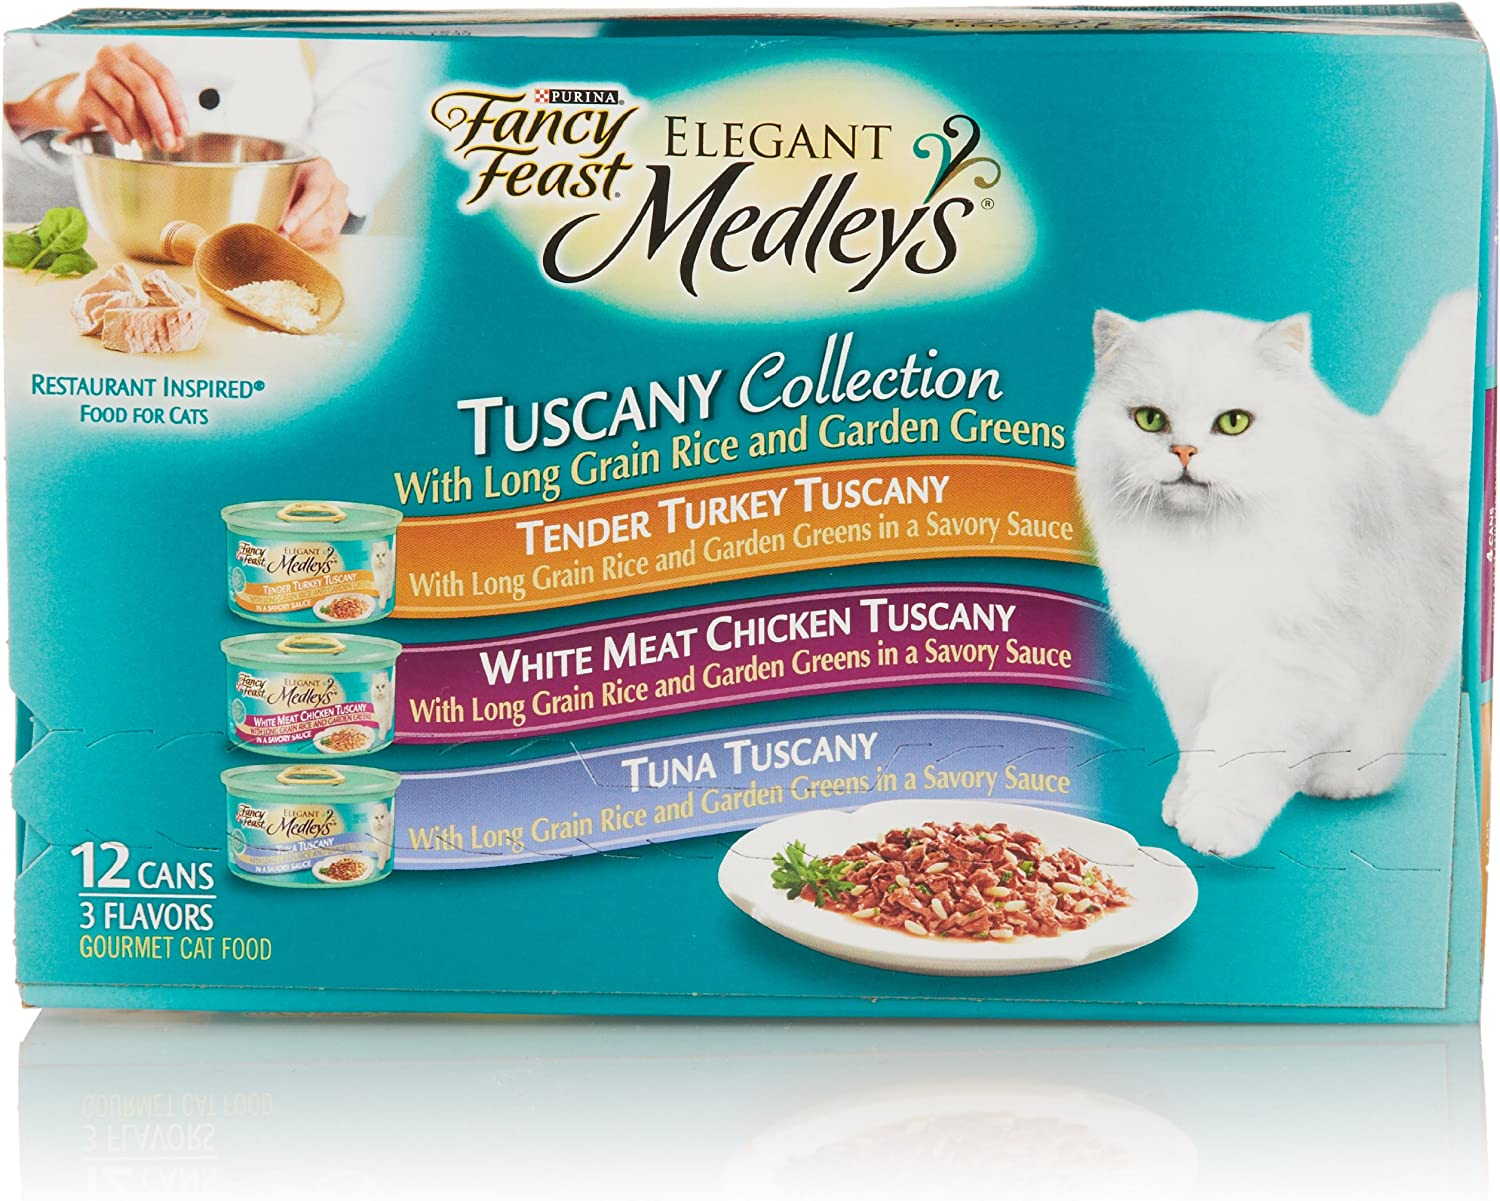 Fancy Feast Elegant Medleys, Tuscany Collection 3-Flavor Variety Pack (12-pack; 3 oz each)